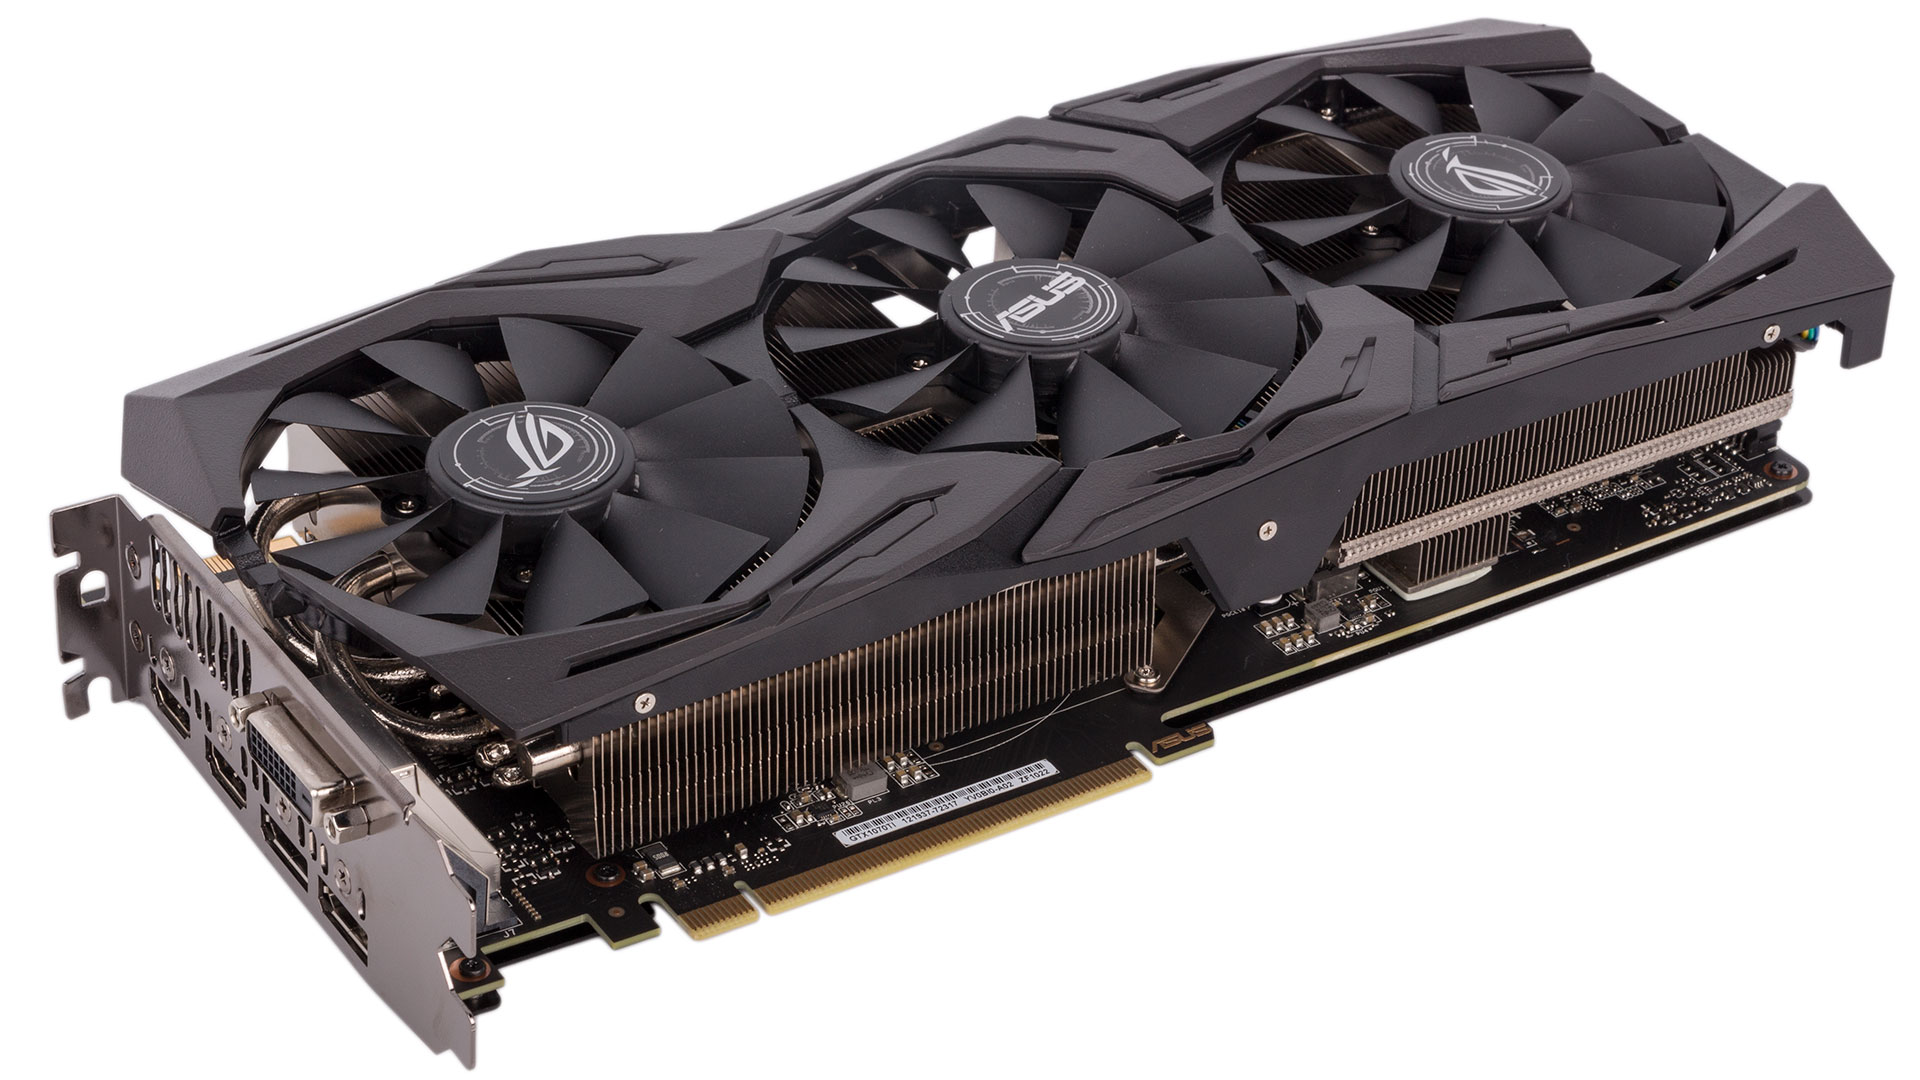 Asus GeForce GTX 1070 Ti ROG Strix Advanced Review | bit